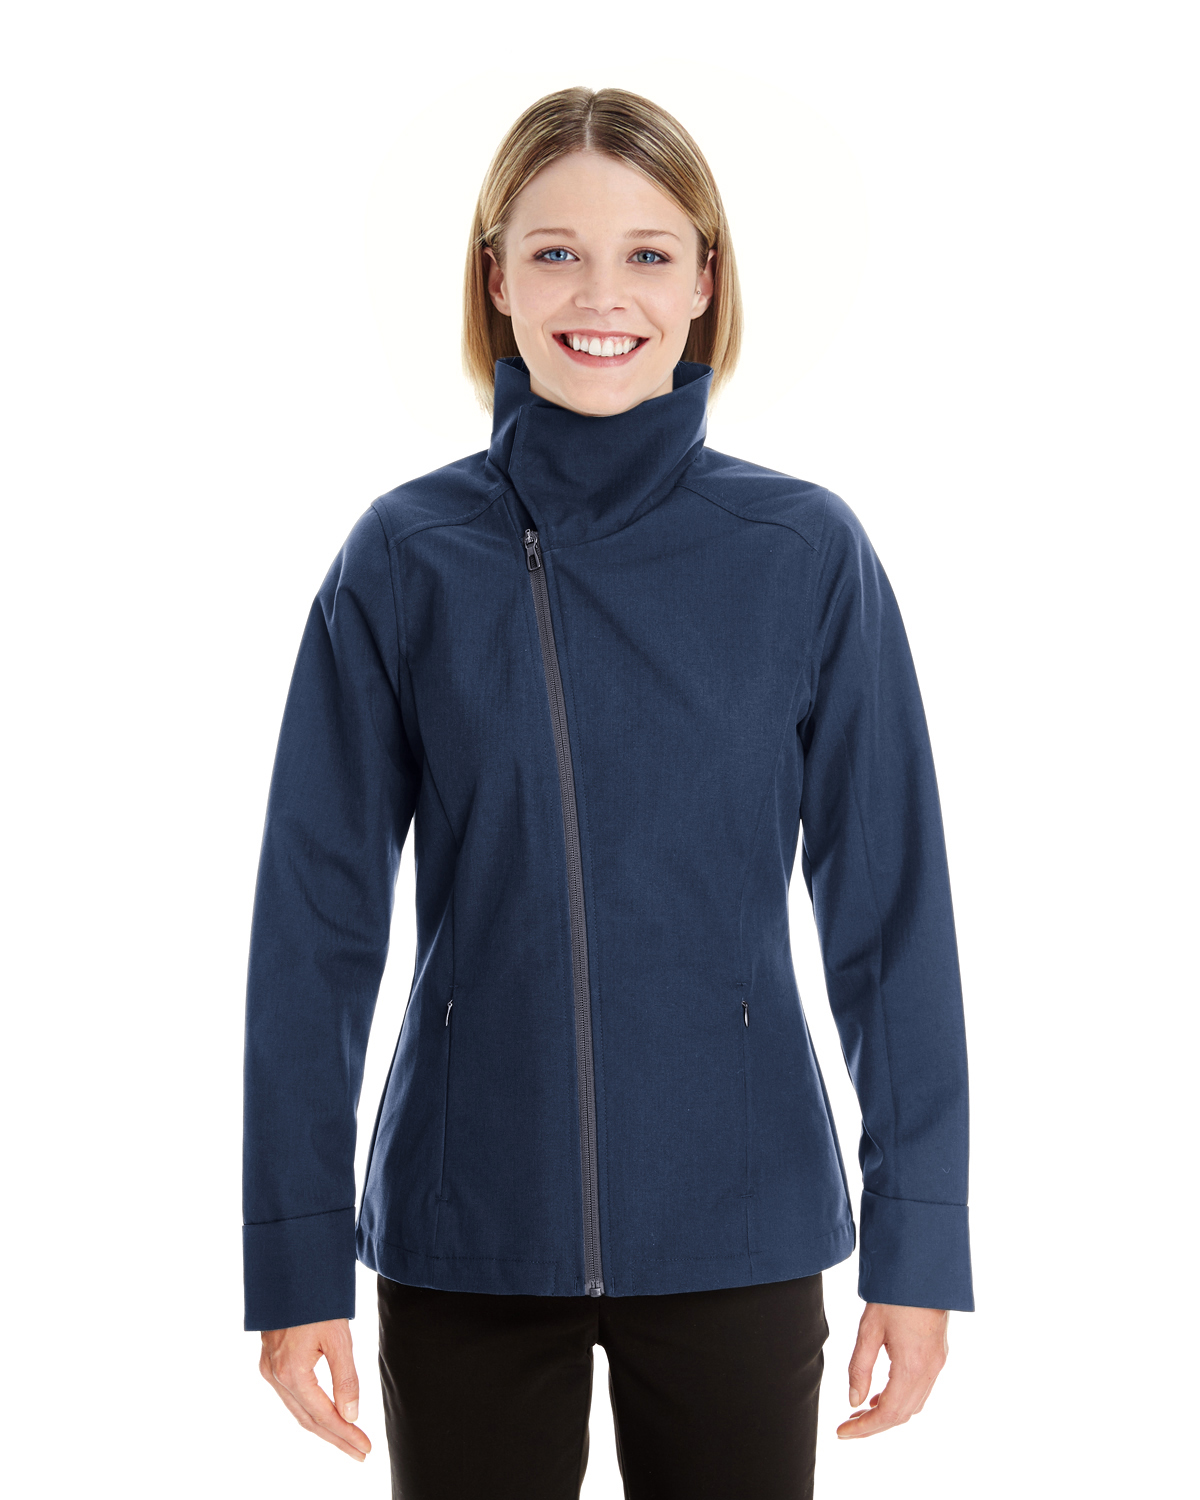 Ash City - North End NE705W - Ladies' Edge Soft Shell ...